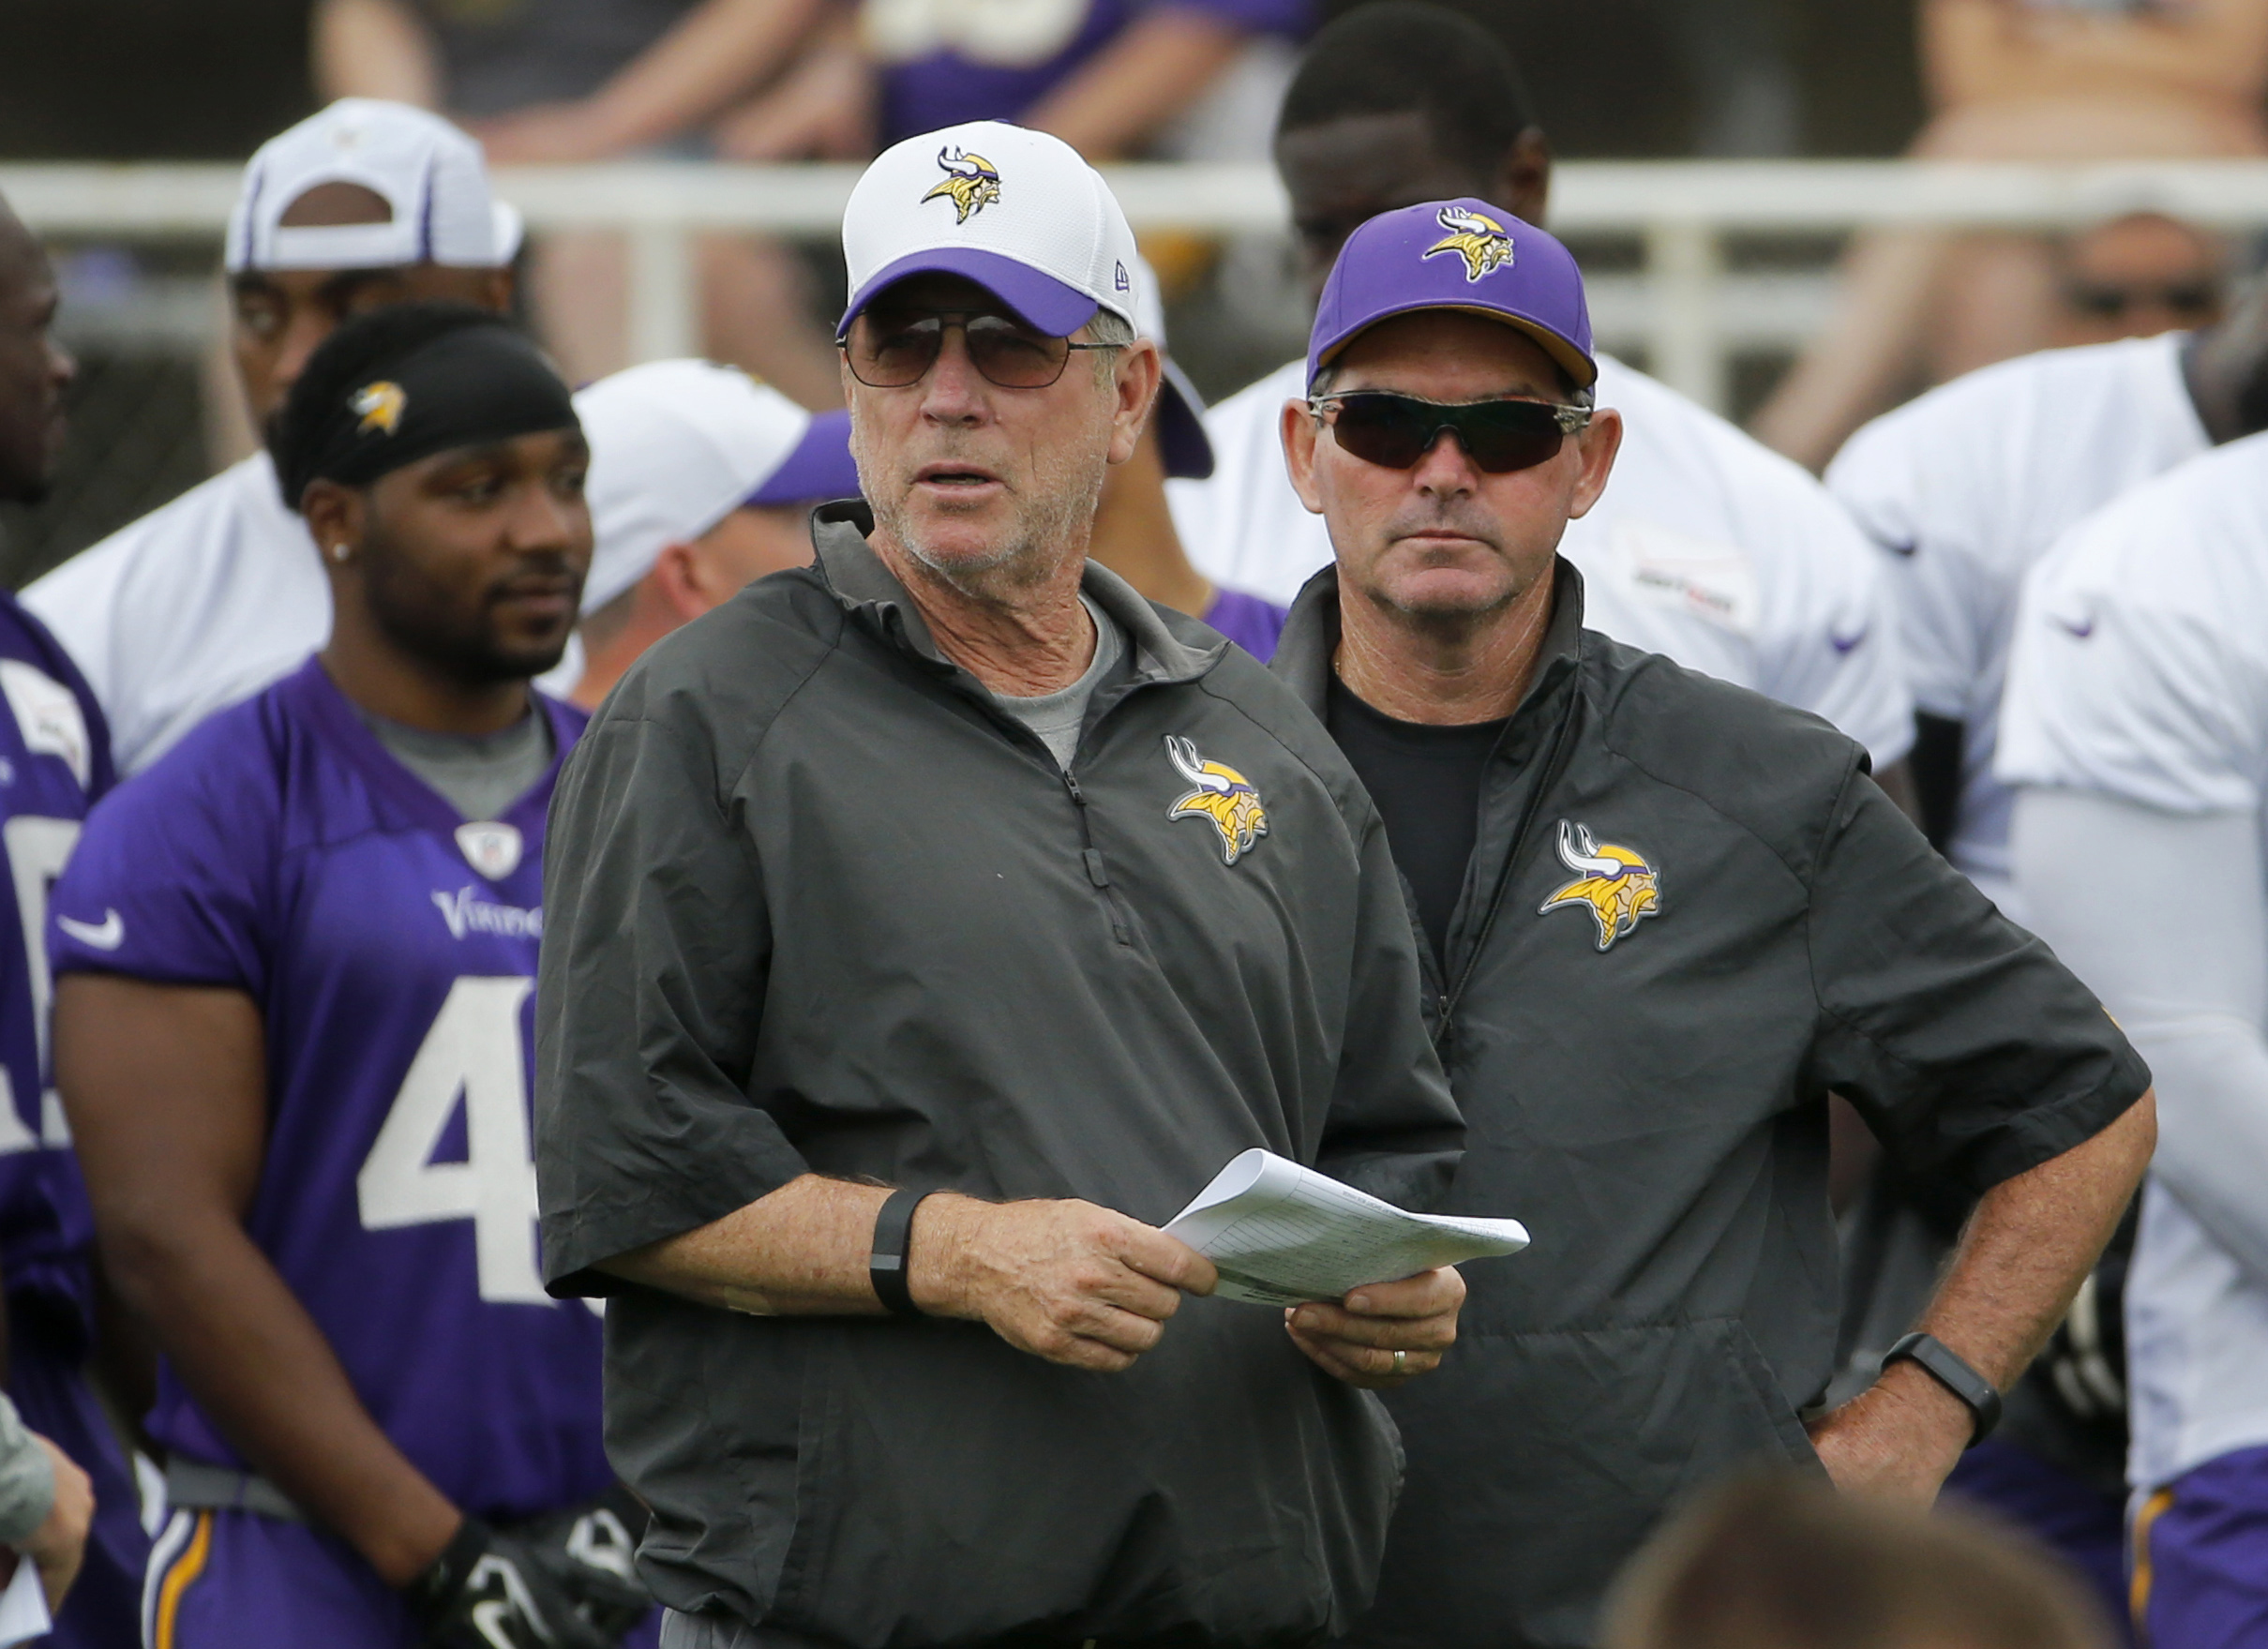 FILE - In this July 27, 2015, file photo, Minnesota Vikings offensive coordinator Norv Turner, left, and head coach Mike Zimmer watch practice at an NFL football training camp on the campus of Minnesota State University, in Mankato, Minn. Vikings offensiv